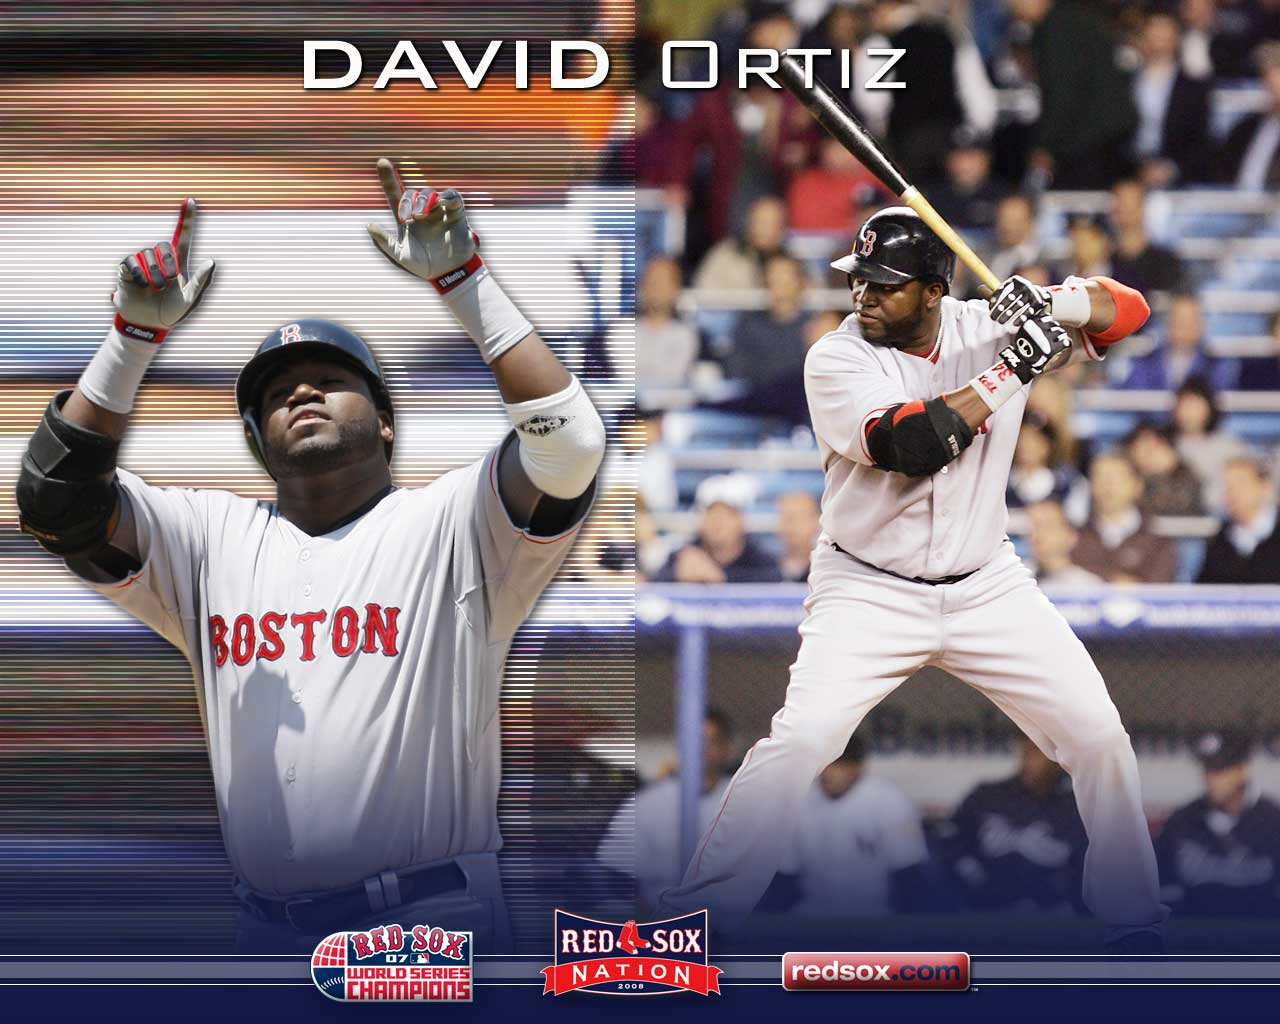 1280x1024 - Boston Red Sox Wallpaper Screensavers 42